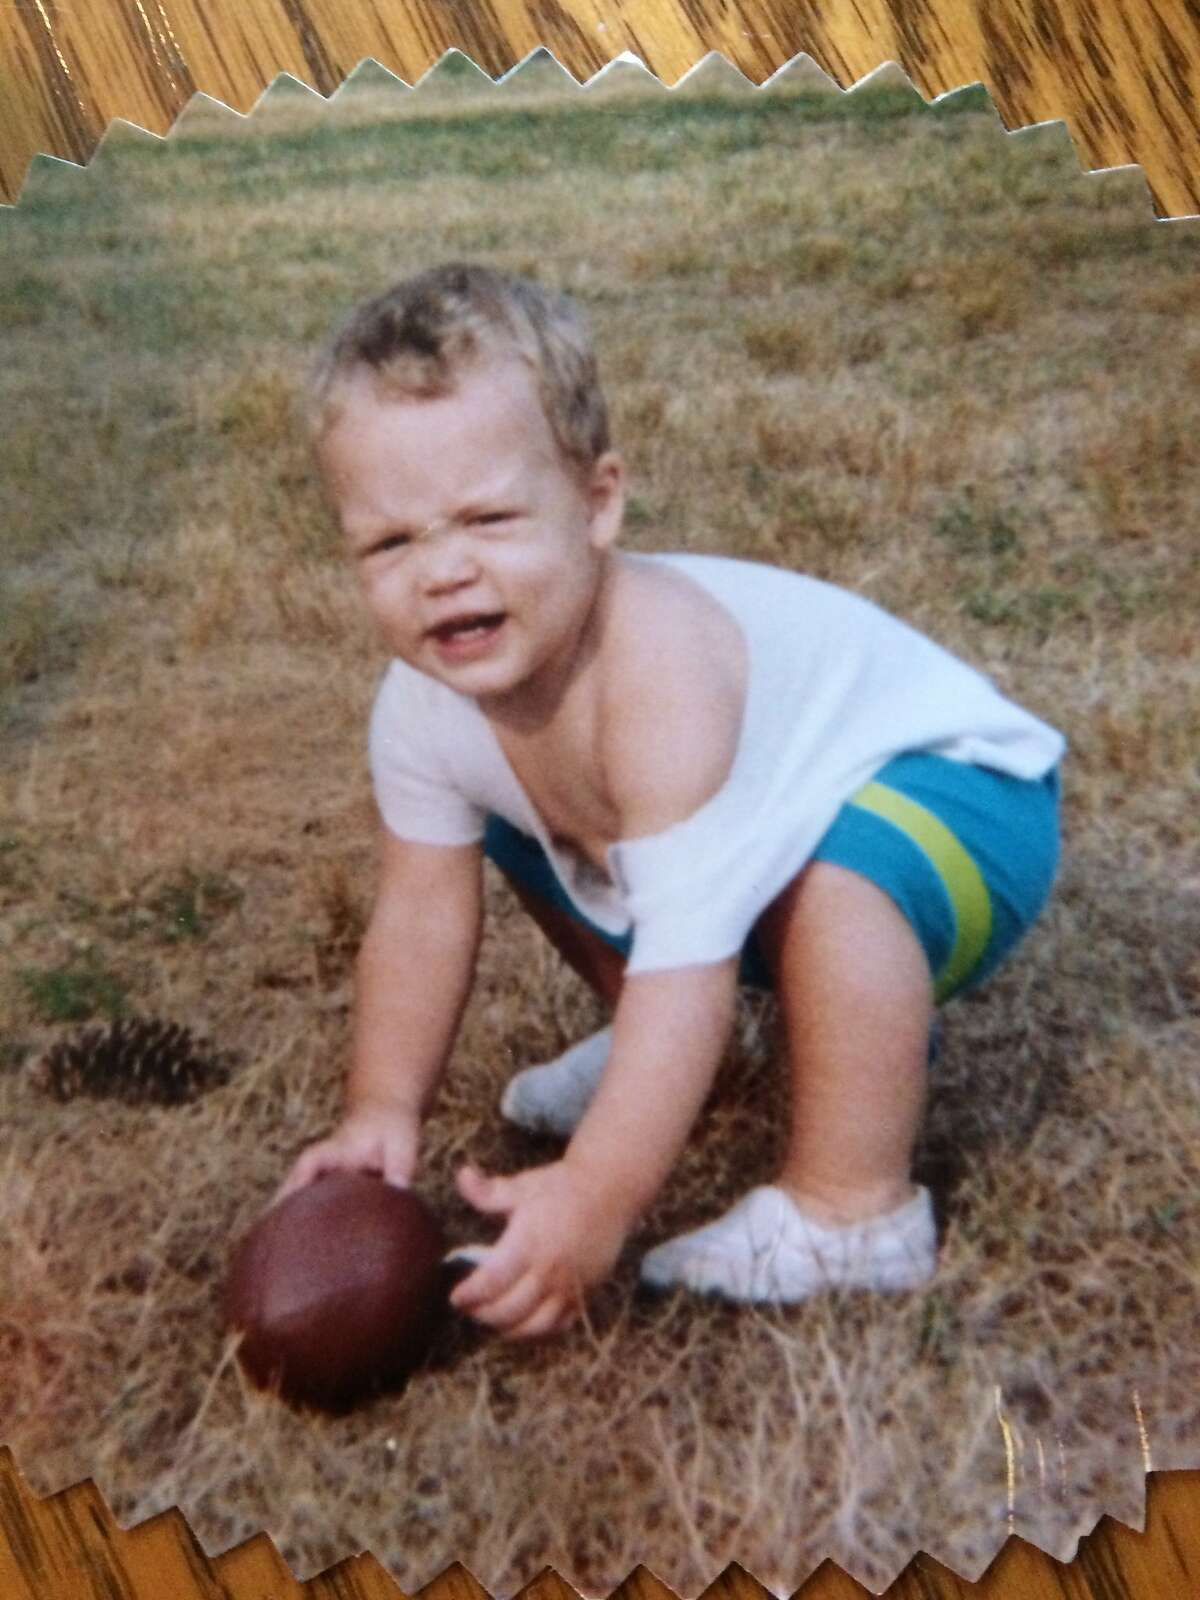 Raiders safety Erik Harris shows an early affinity for football in a family photo.